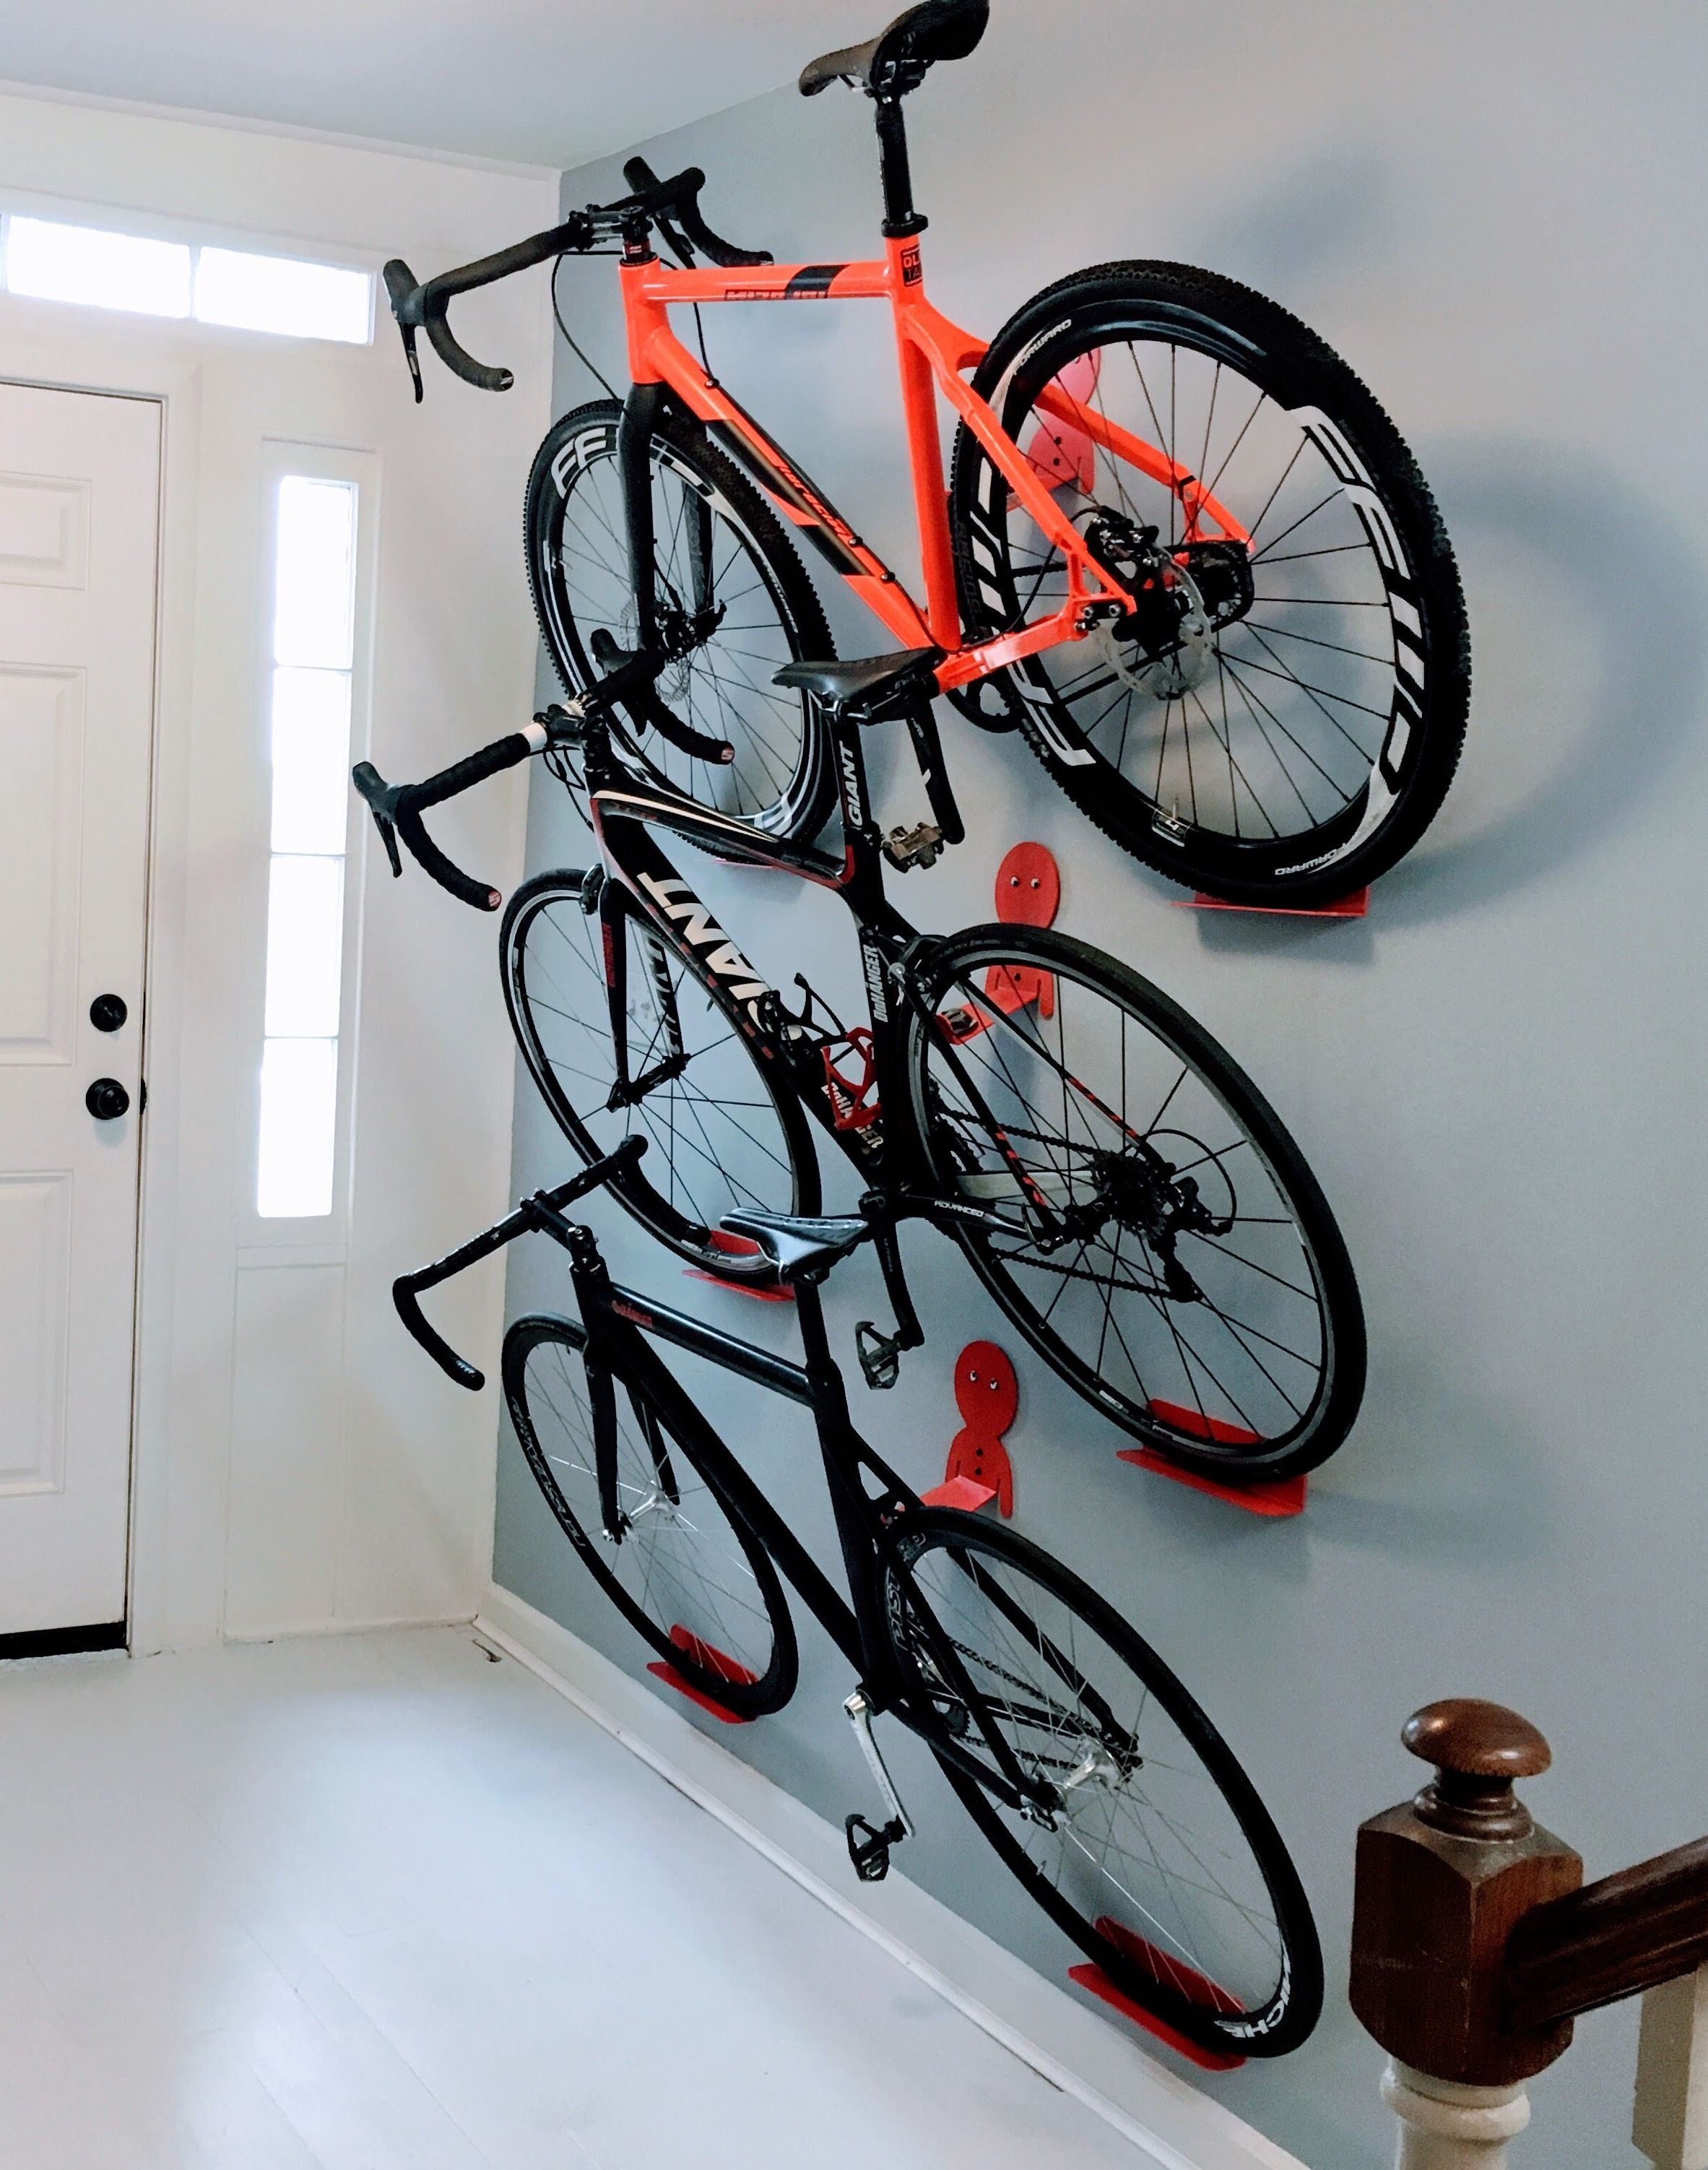 multiple bikes hanging rack system dahanger dan pedal hook dah nger bike storage garage. Black Bedroom Furniture Sets. Home Design Ideas